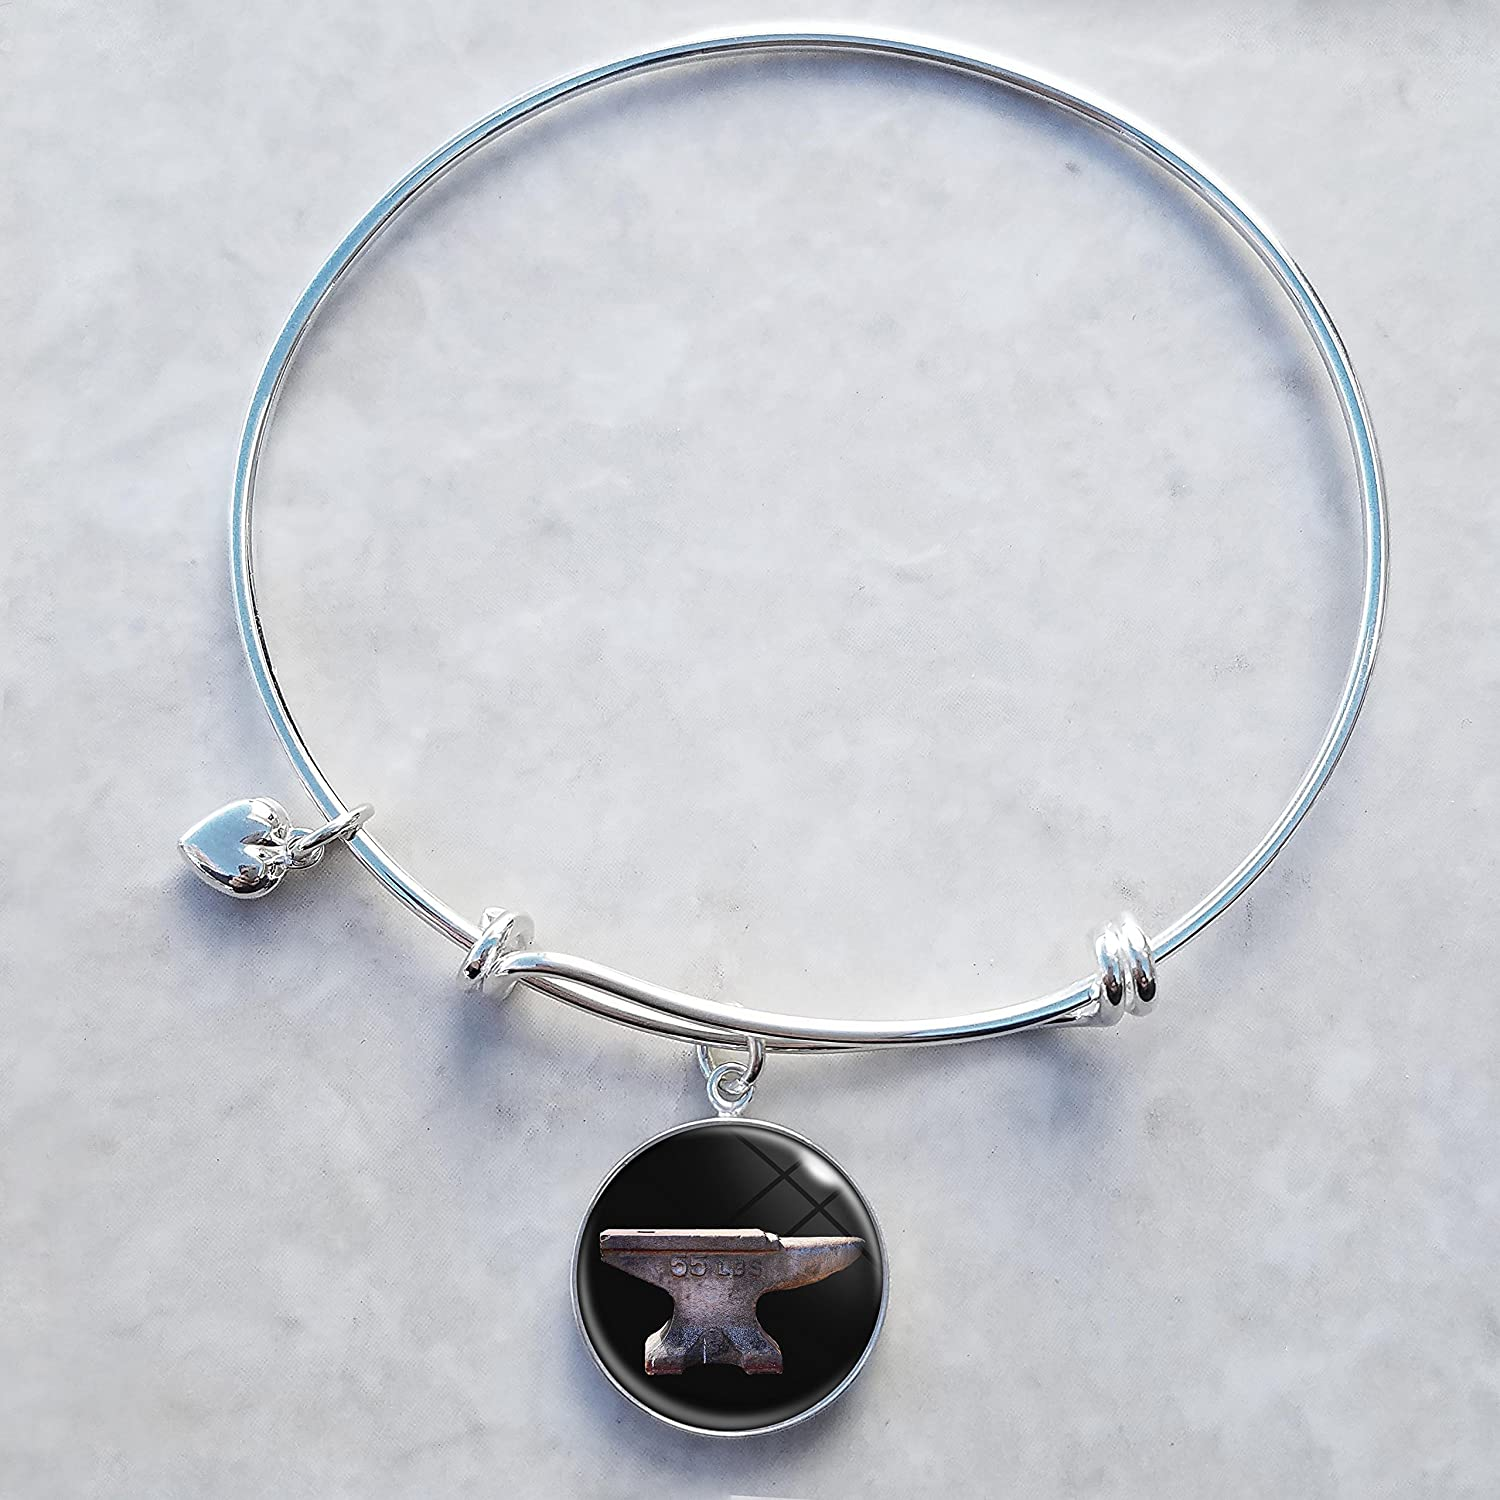 Anvil Sterling Ultra-Cheap Deals Max 63% OFF Silver Expandable Bracelet Wire Bangle Charm